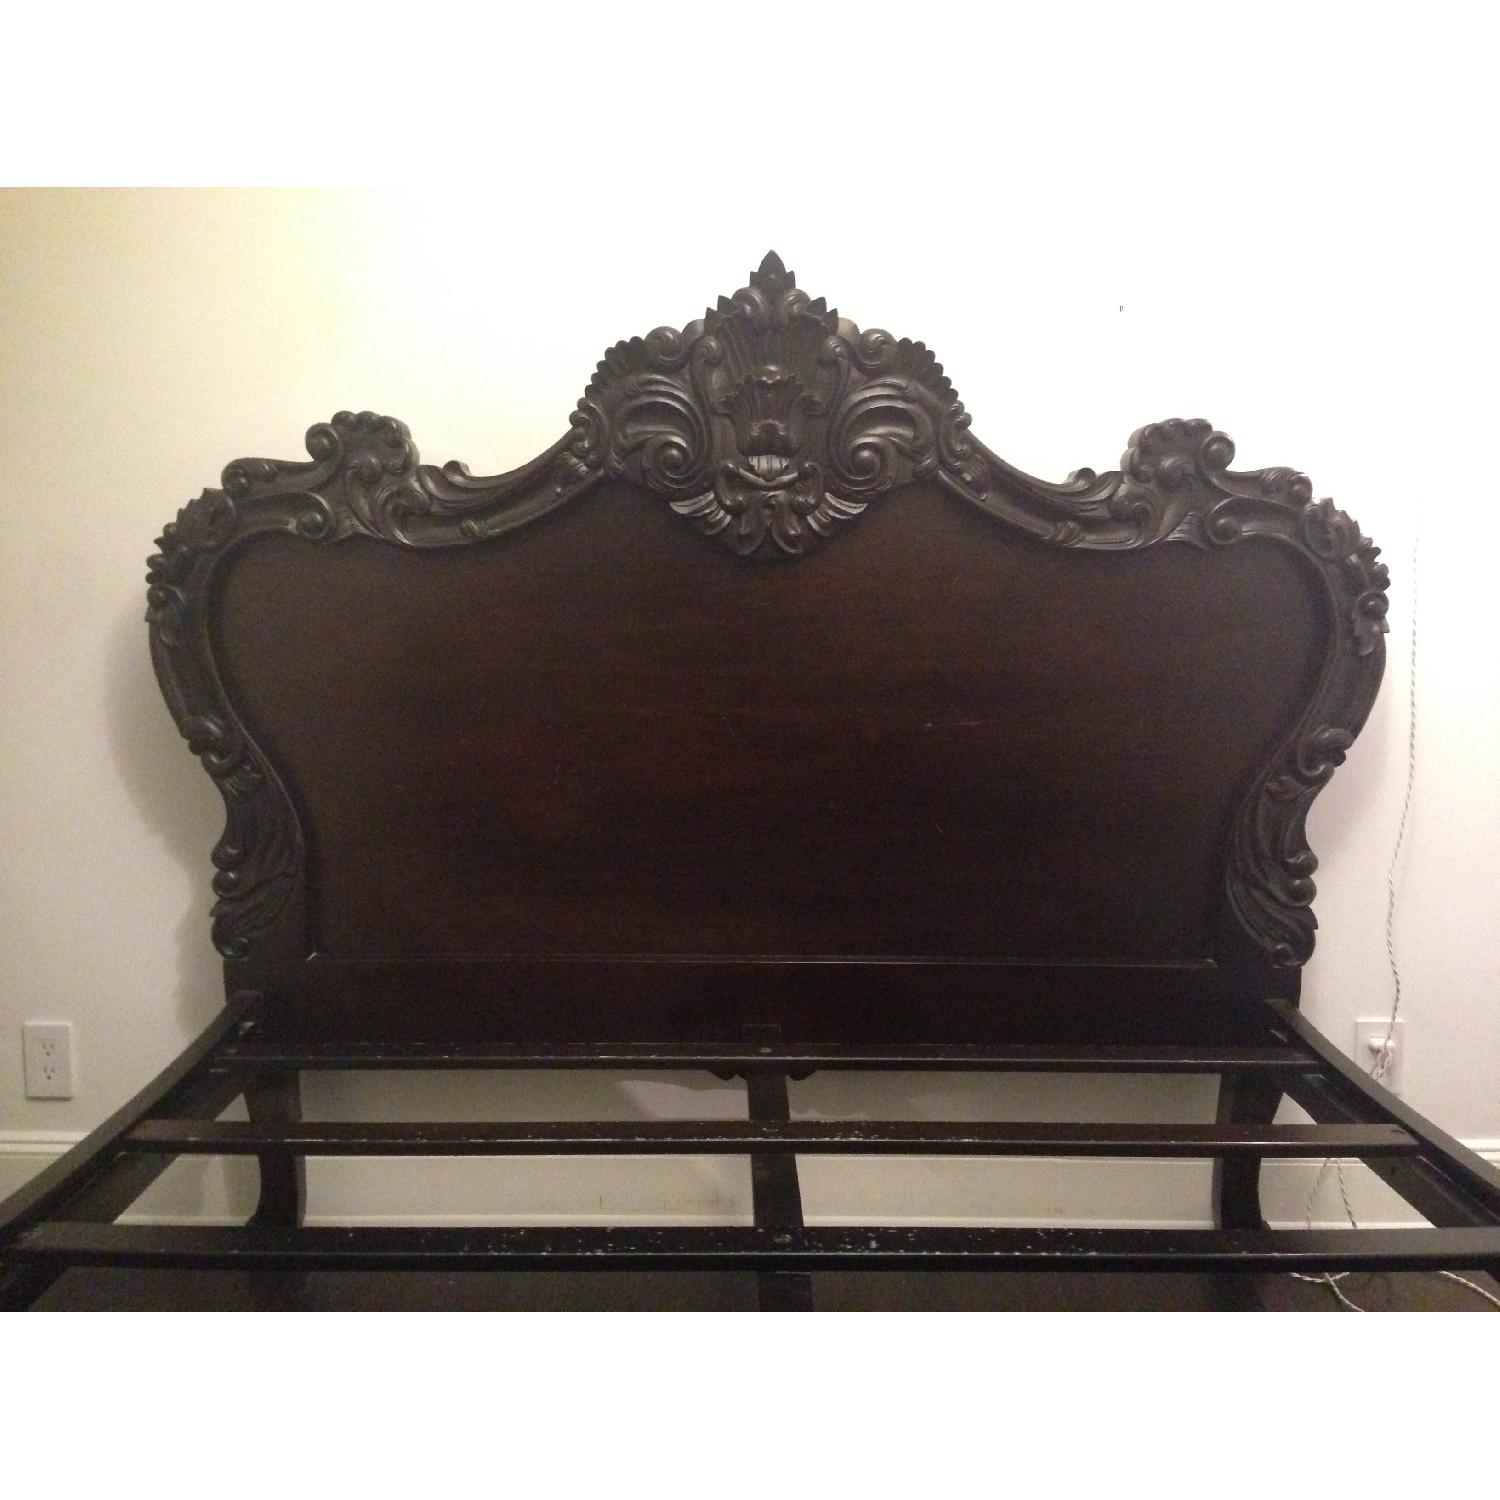 Brocade Home Wooden Queen Size Bed Frame w/ Carved Headboard/Footboard - image-1